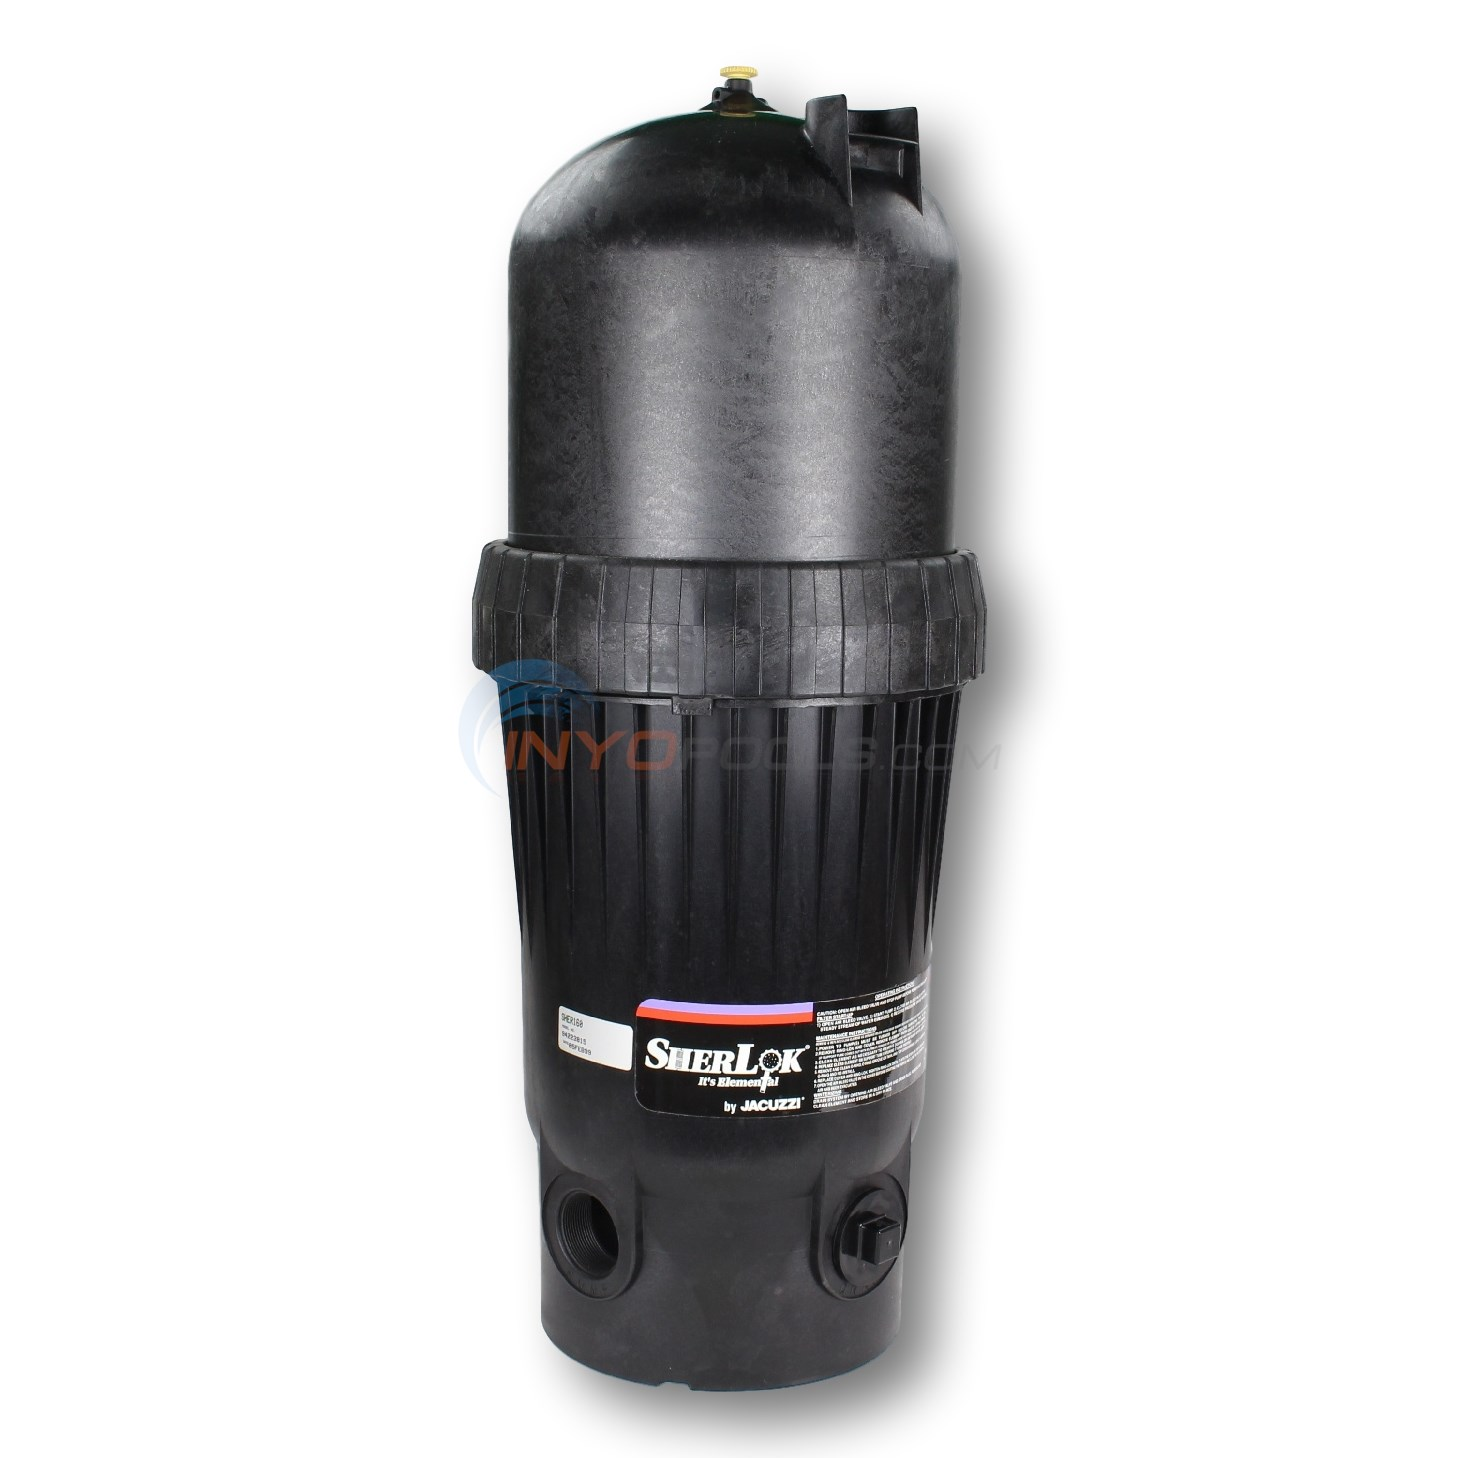 Jacuzzi Inc. Sherlok Cartridge Filter 160 Sq. Ft. - 94223815